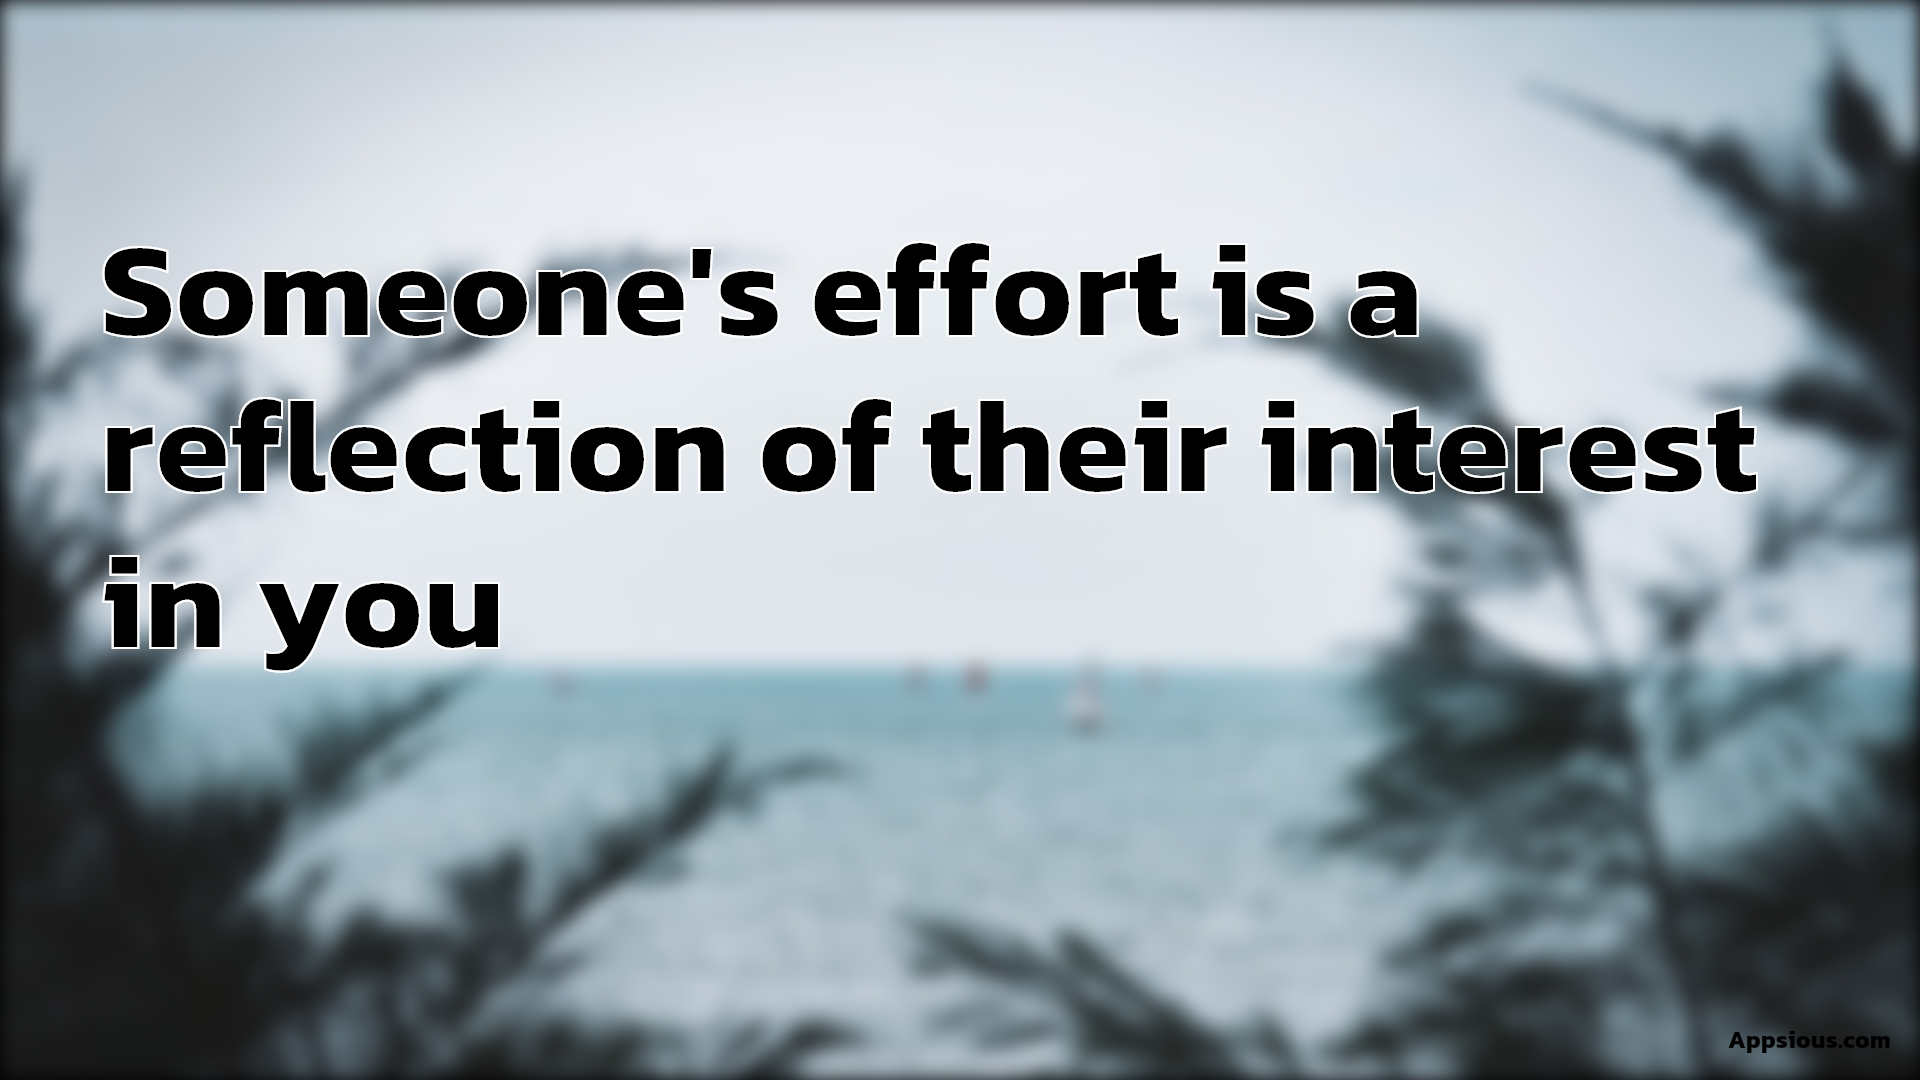 Someone's effort is a reflection of their interest in you